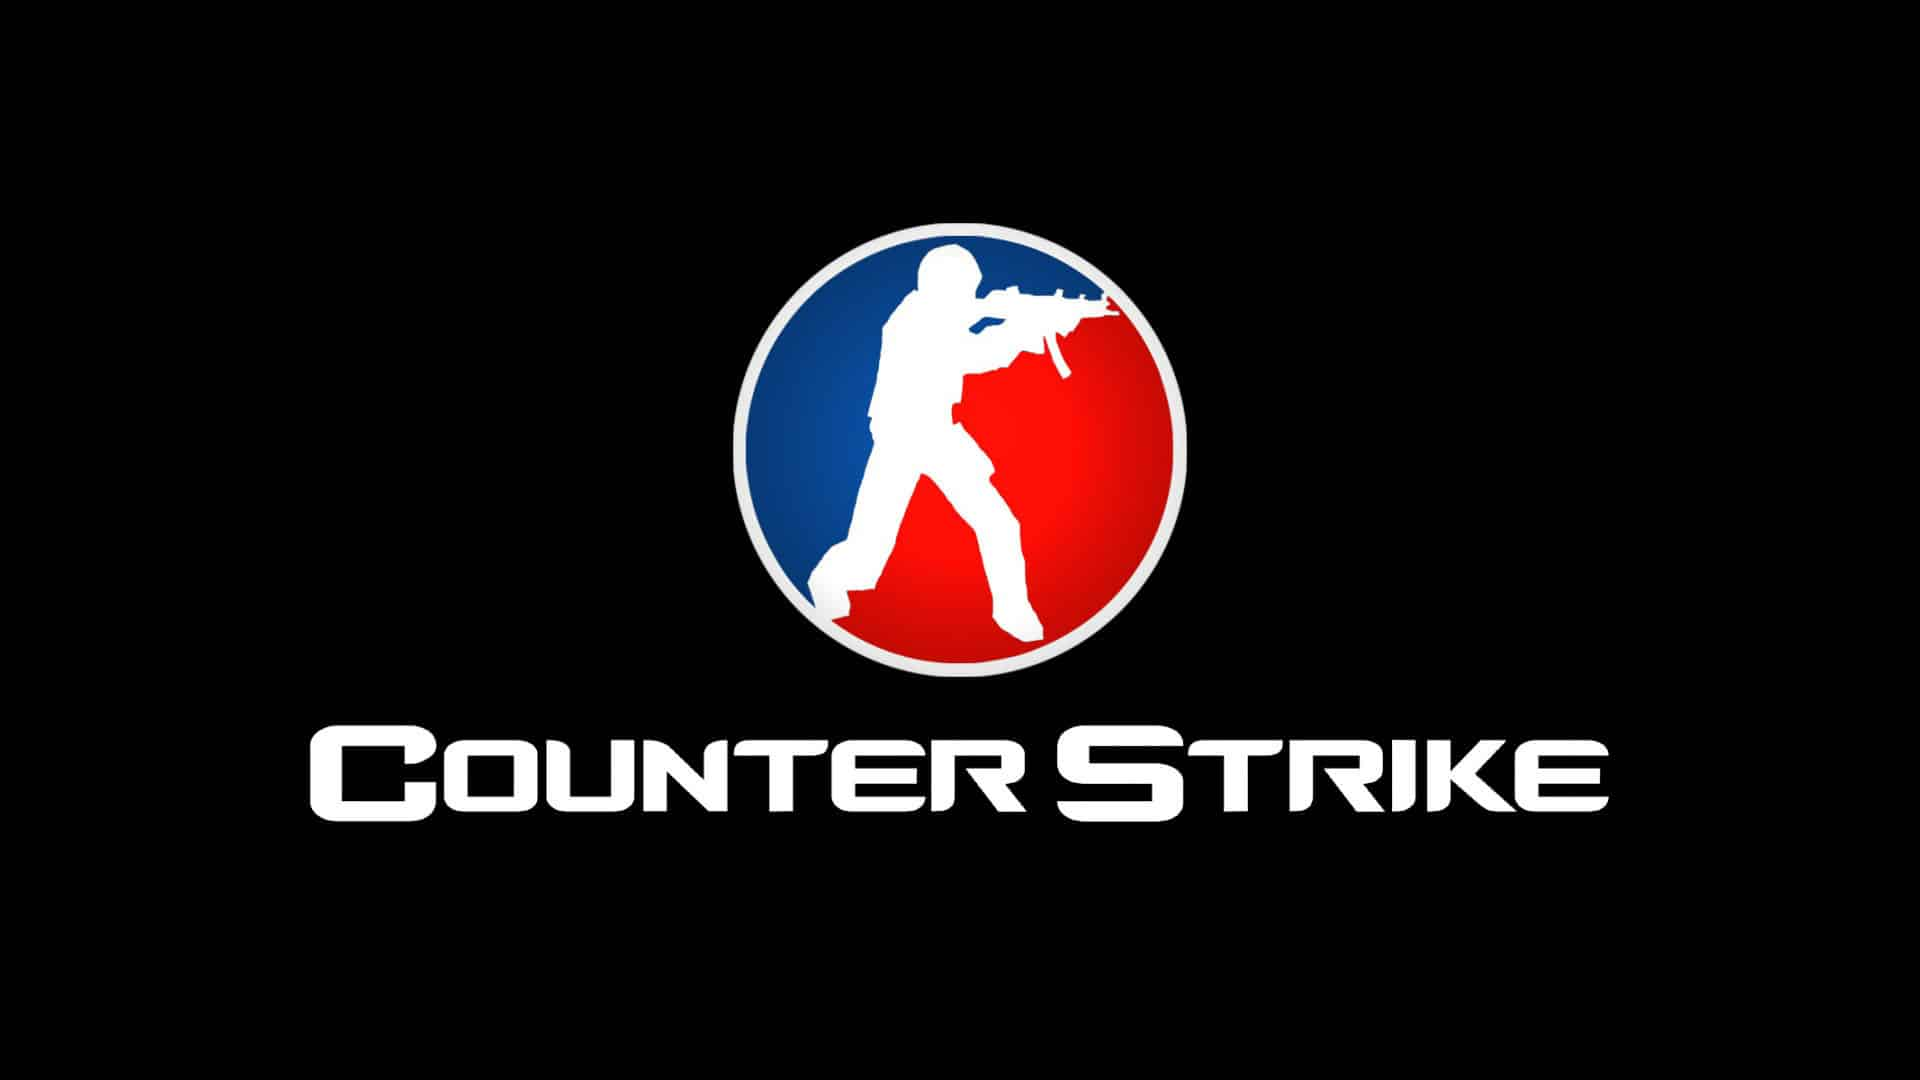 Counter Strike 1 6 Download Counter Strike Hd Wallpapers Counter